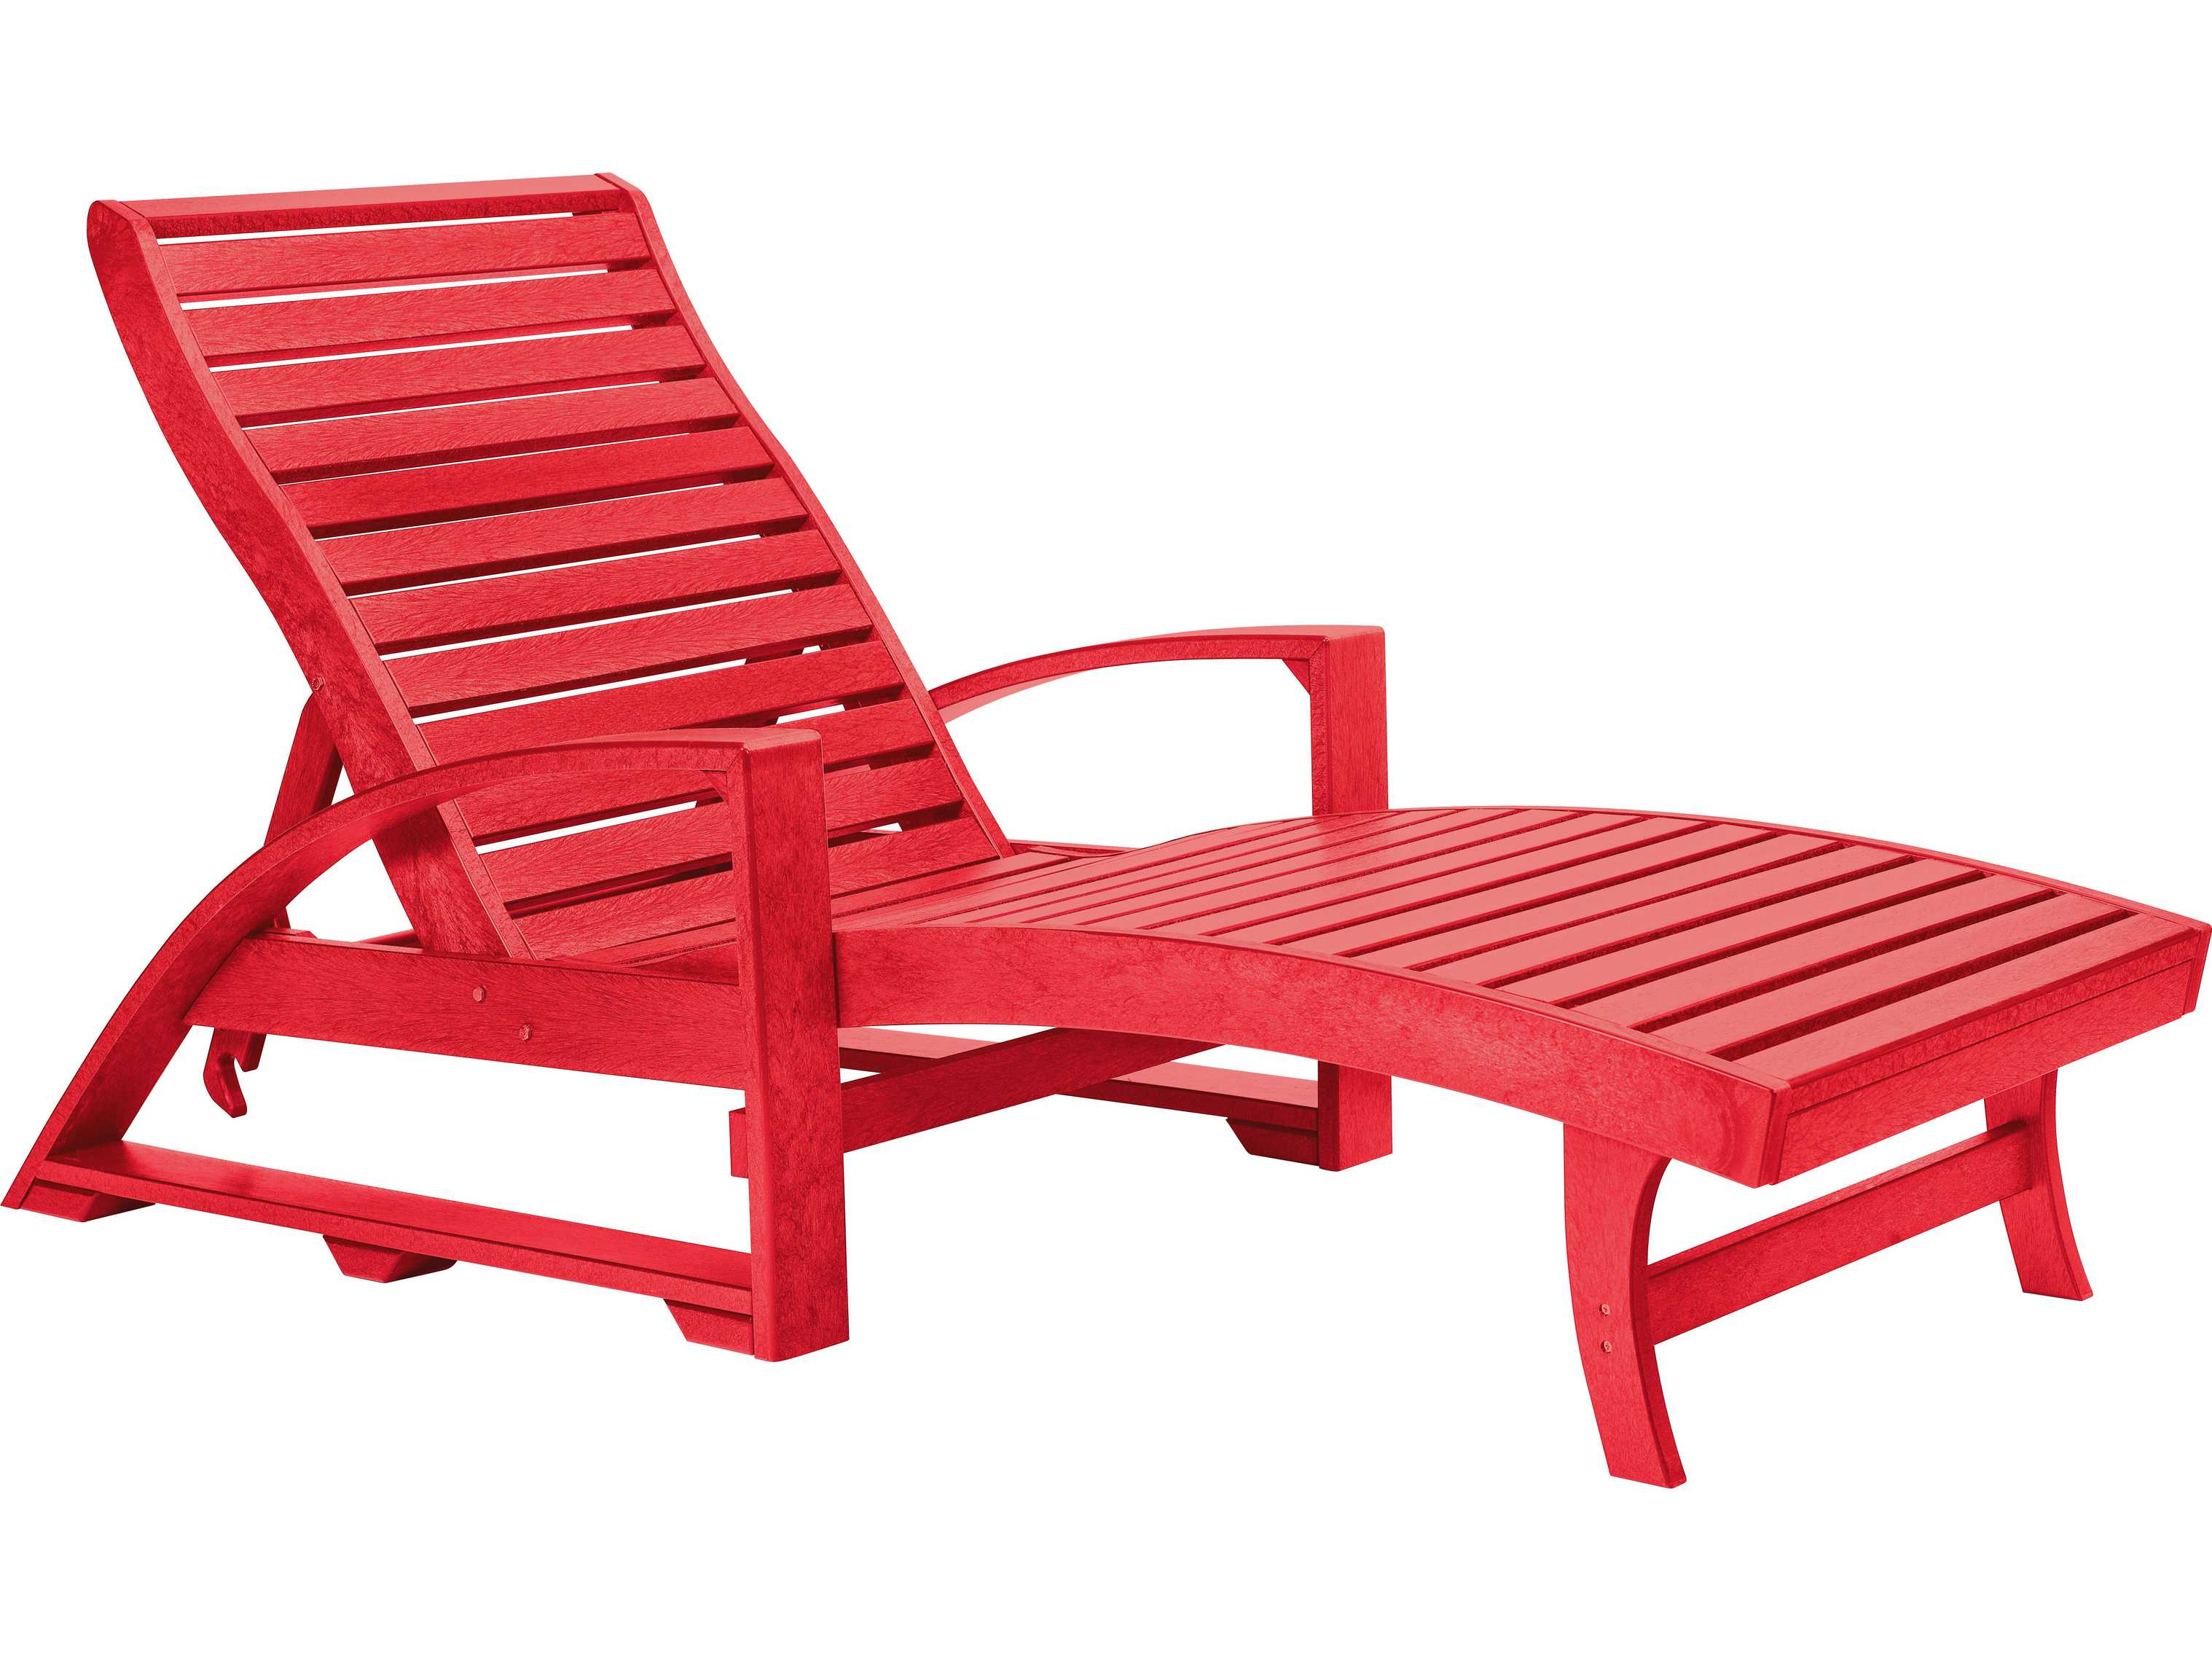 Patio Chaise Lounges & Outdoor Chaise Lounges PatioLiving